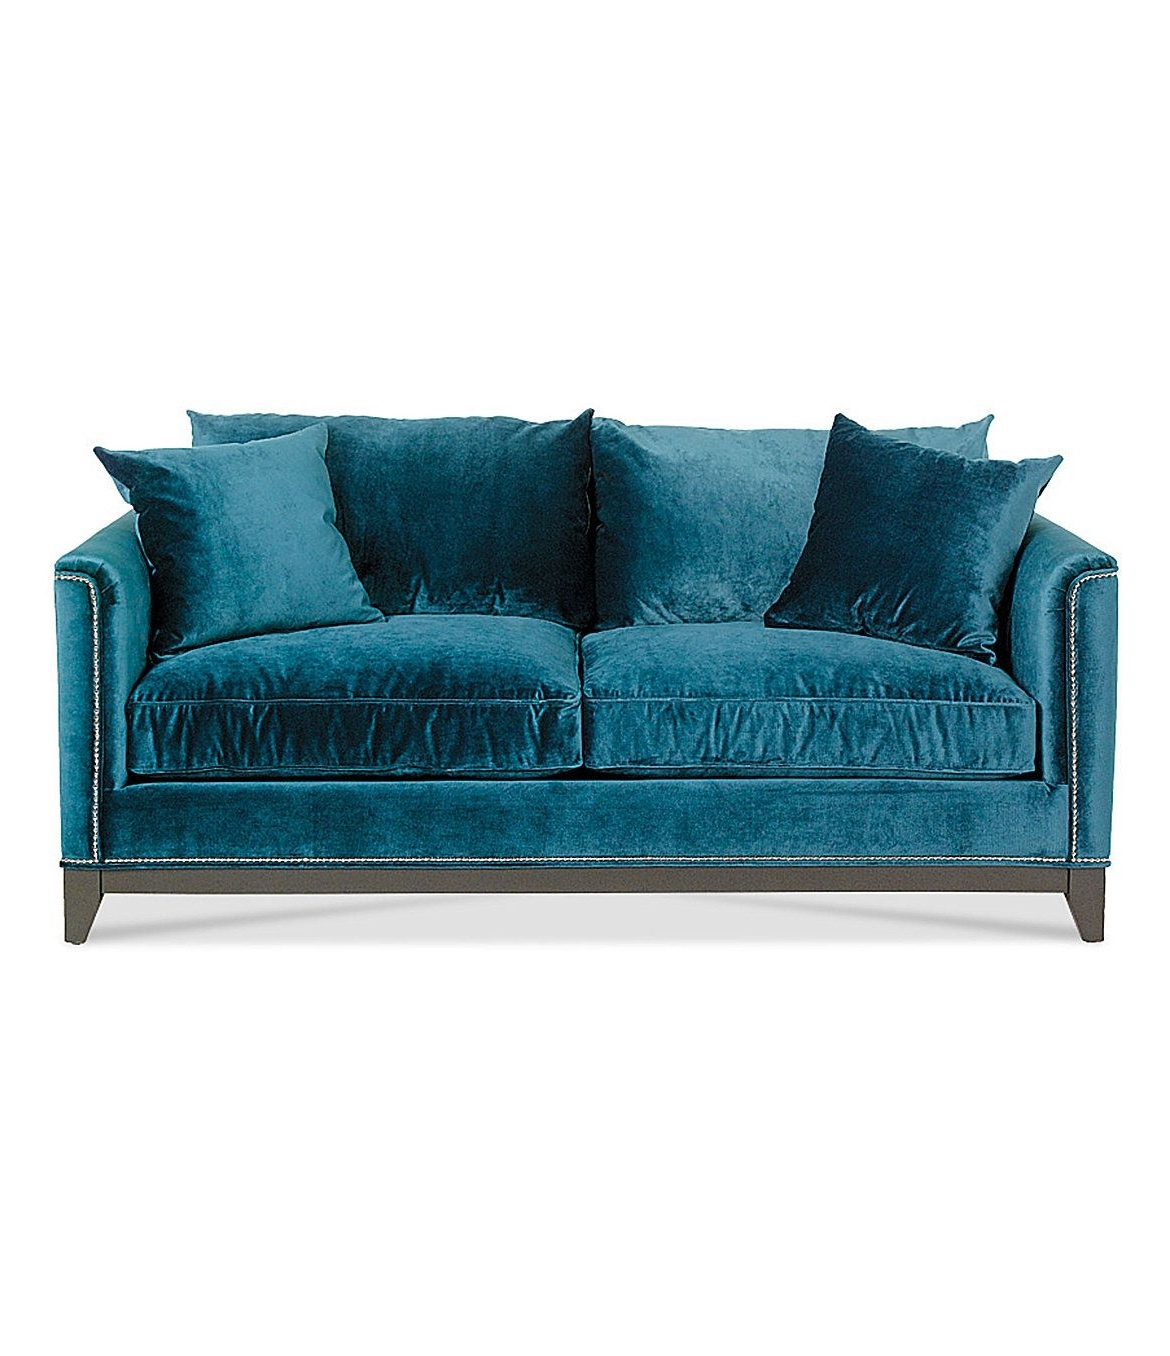 "Jonathan Louis ""mystere"" Sofa From Dillard's $699! This Just Could With Regard To Trendy Dillards Sectional Sofas (Gallery 11 of 20)"